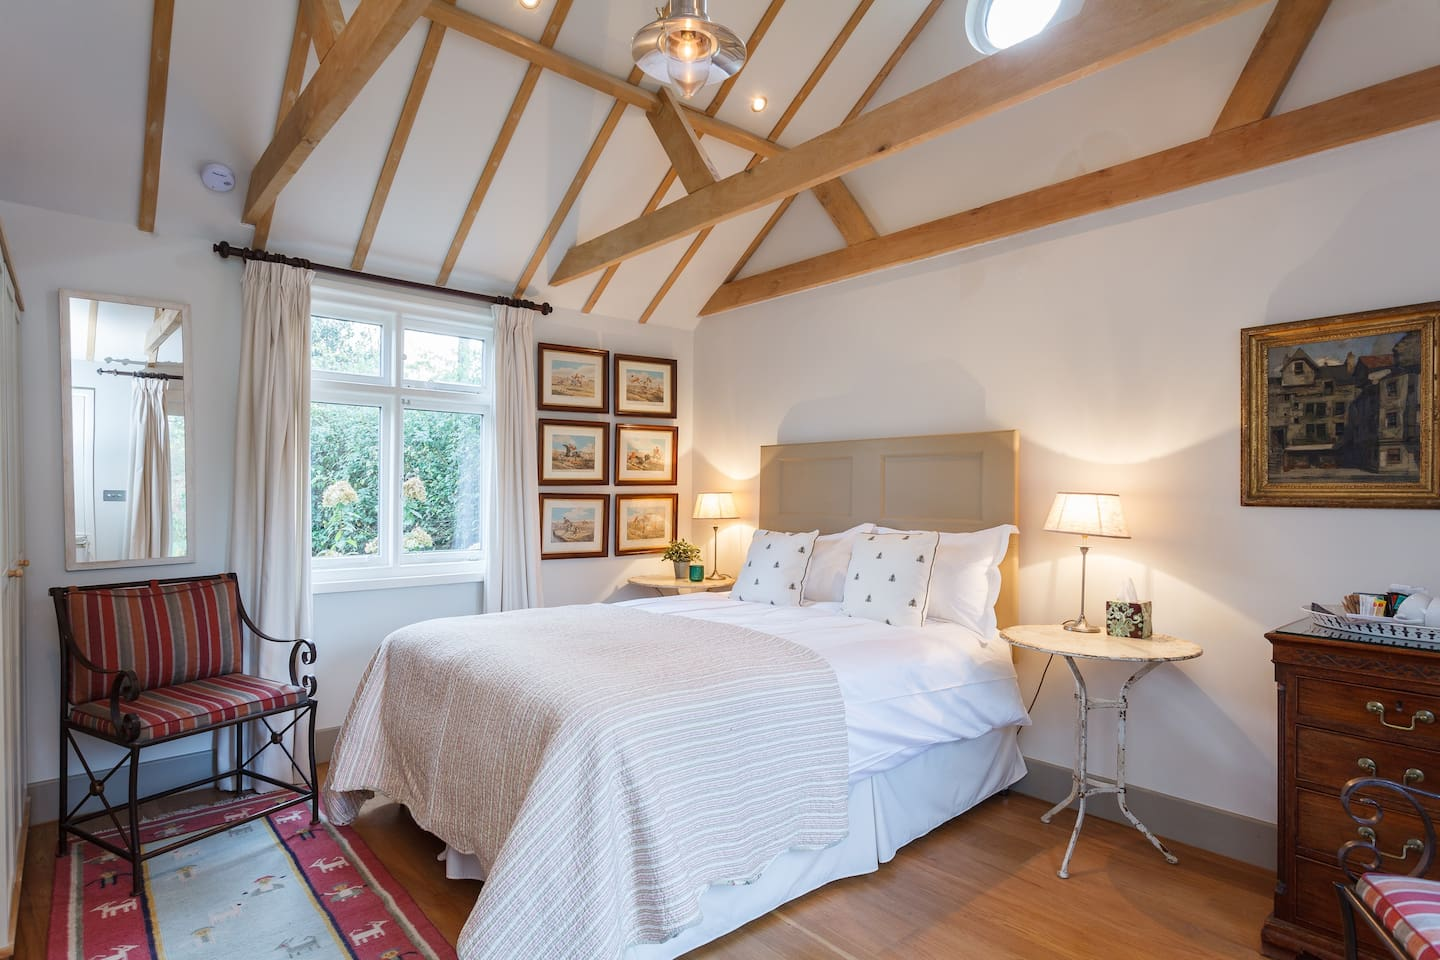 Roomy space with vaulted ceiling & kingsize bed